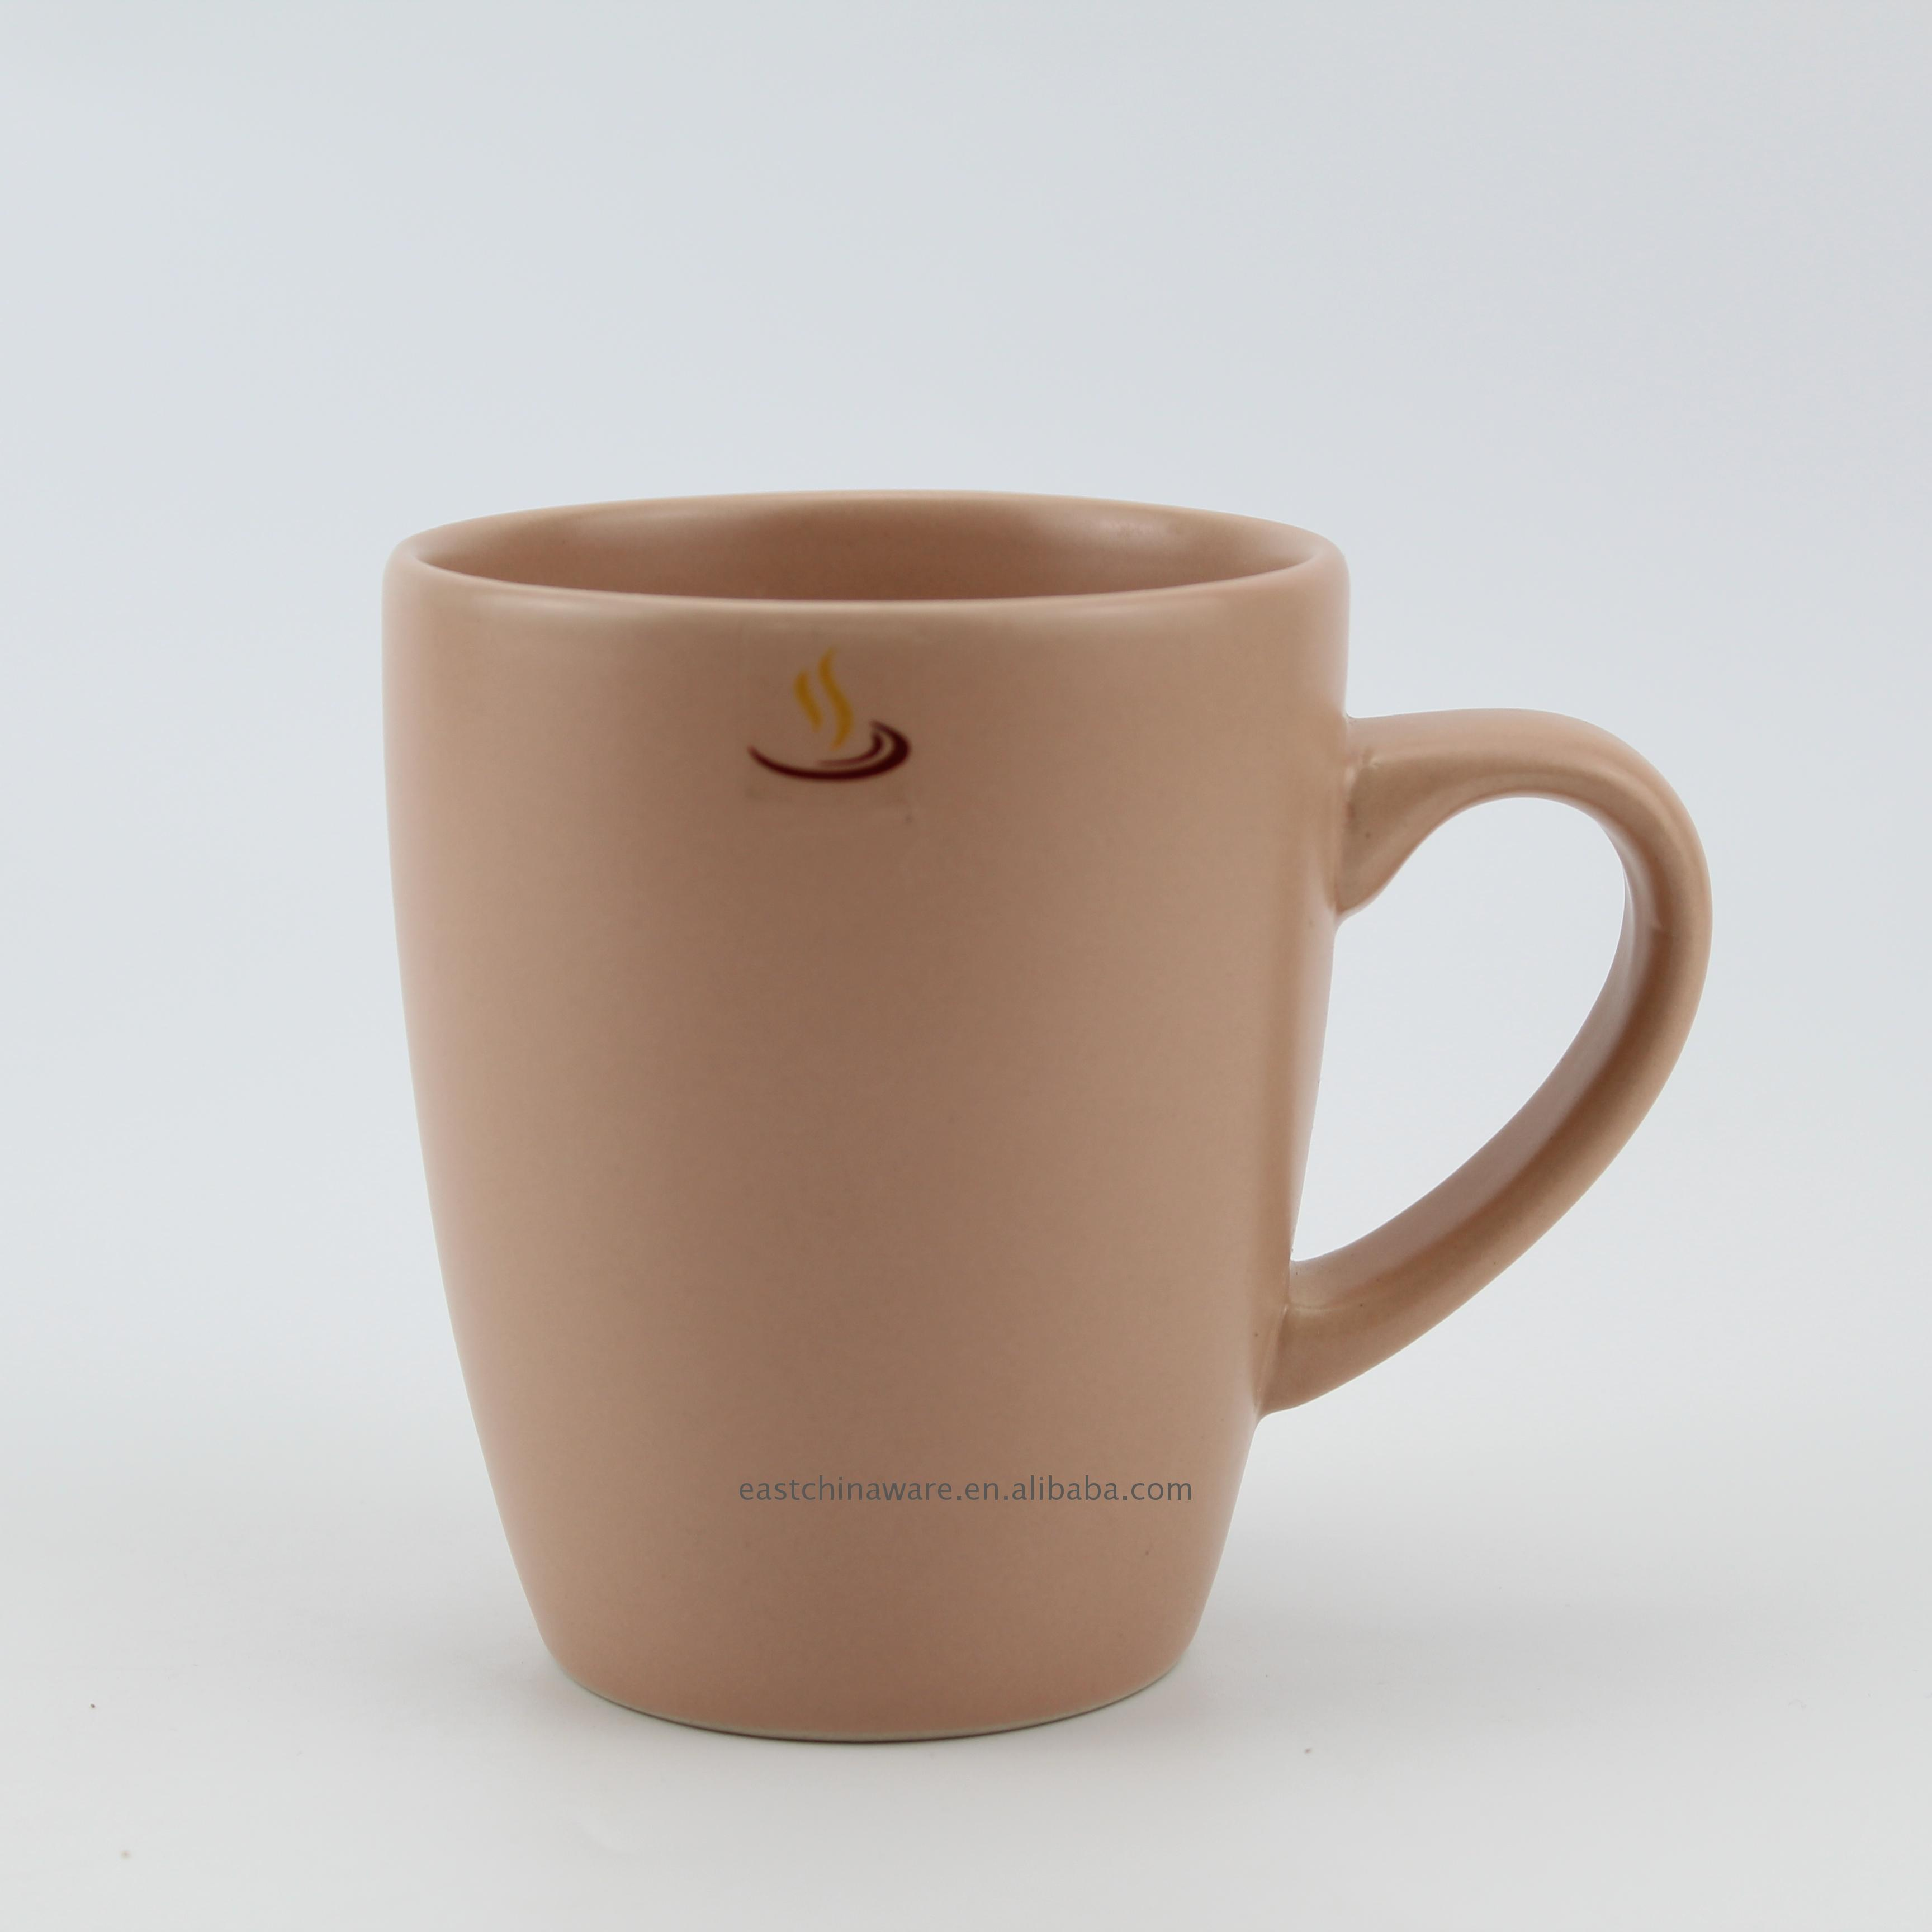 Economic and Efficient ceramic tea cups solid color mug